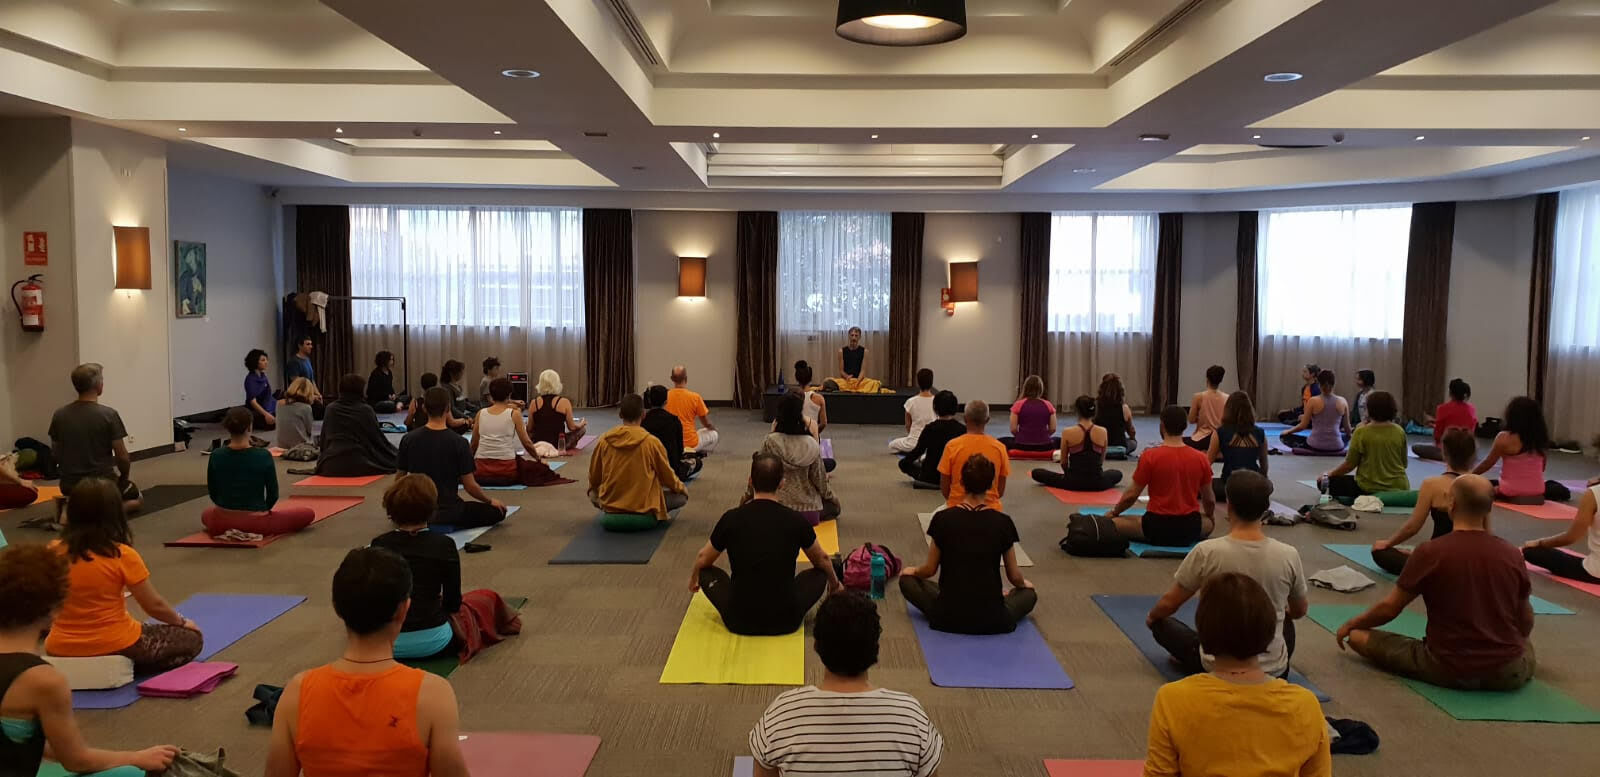 Cita imprescindible para los amantes del yoga en el Madrid Yoga Congress